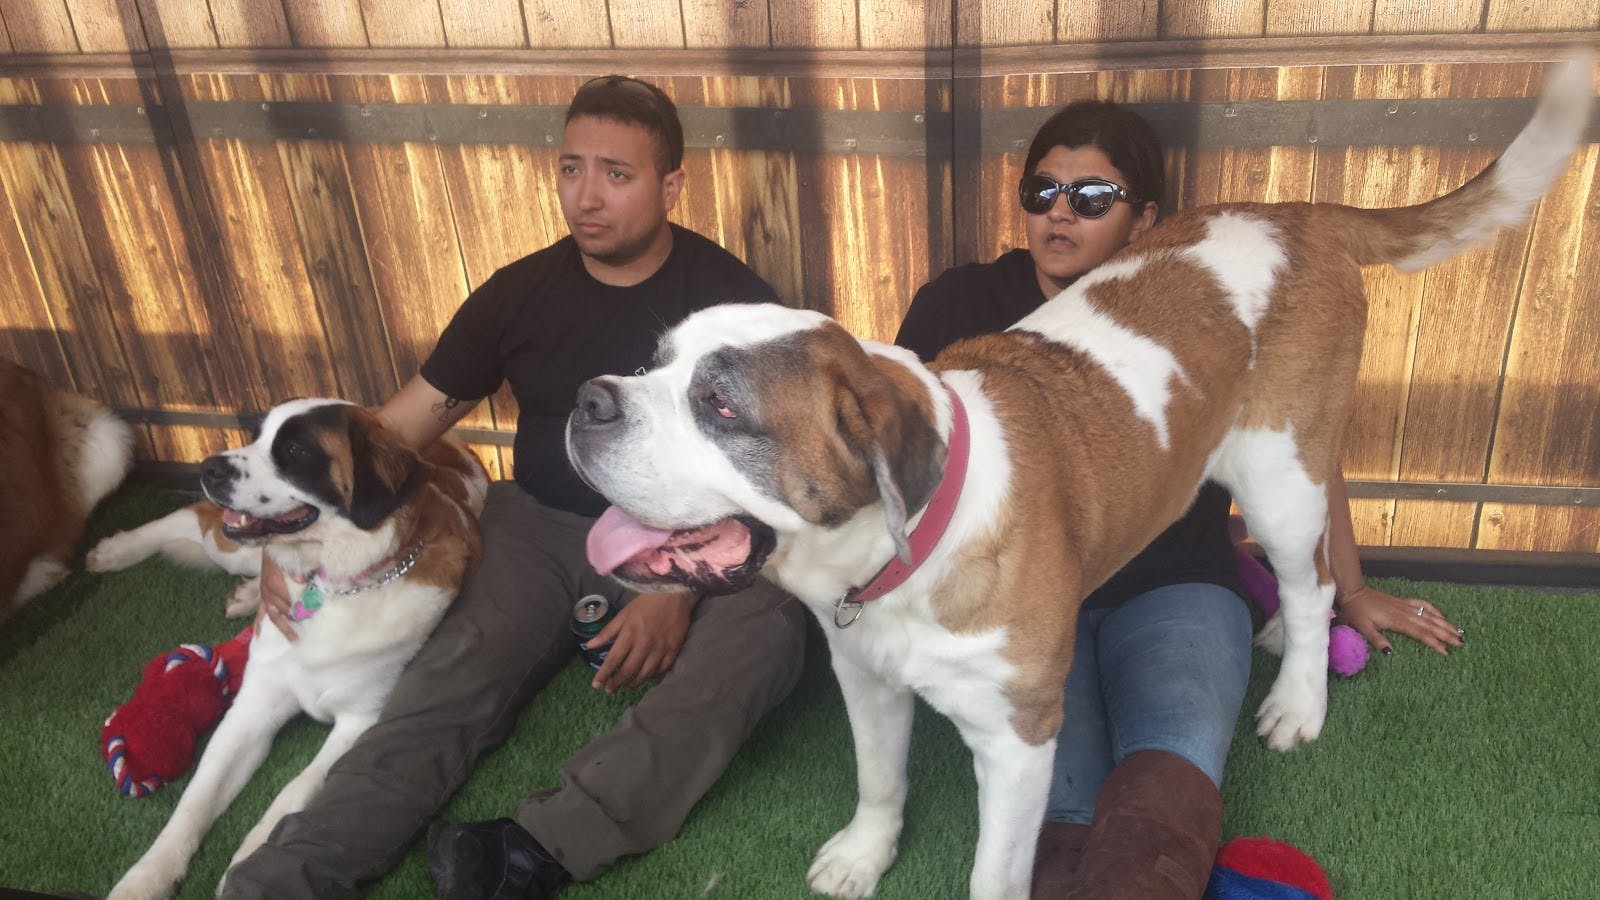 The dogs mostly hung out with members of the Saint Bernard Rescue Foundation when not out on rescue missions.